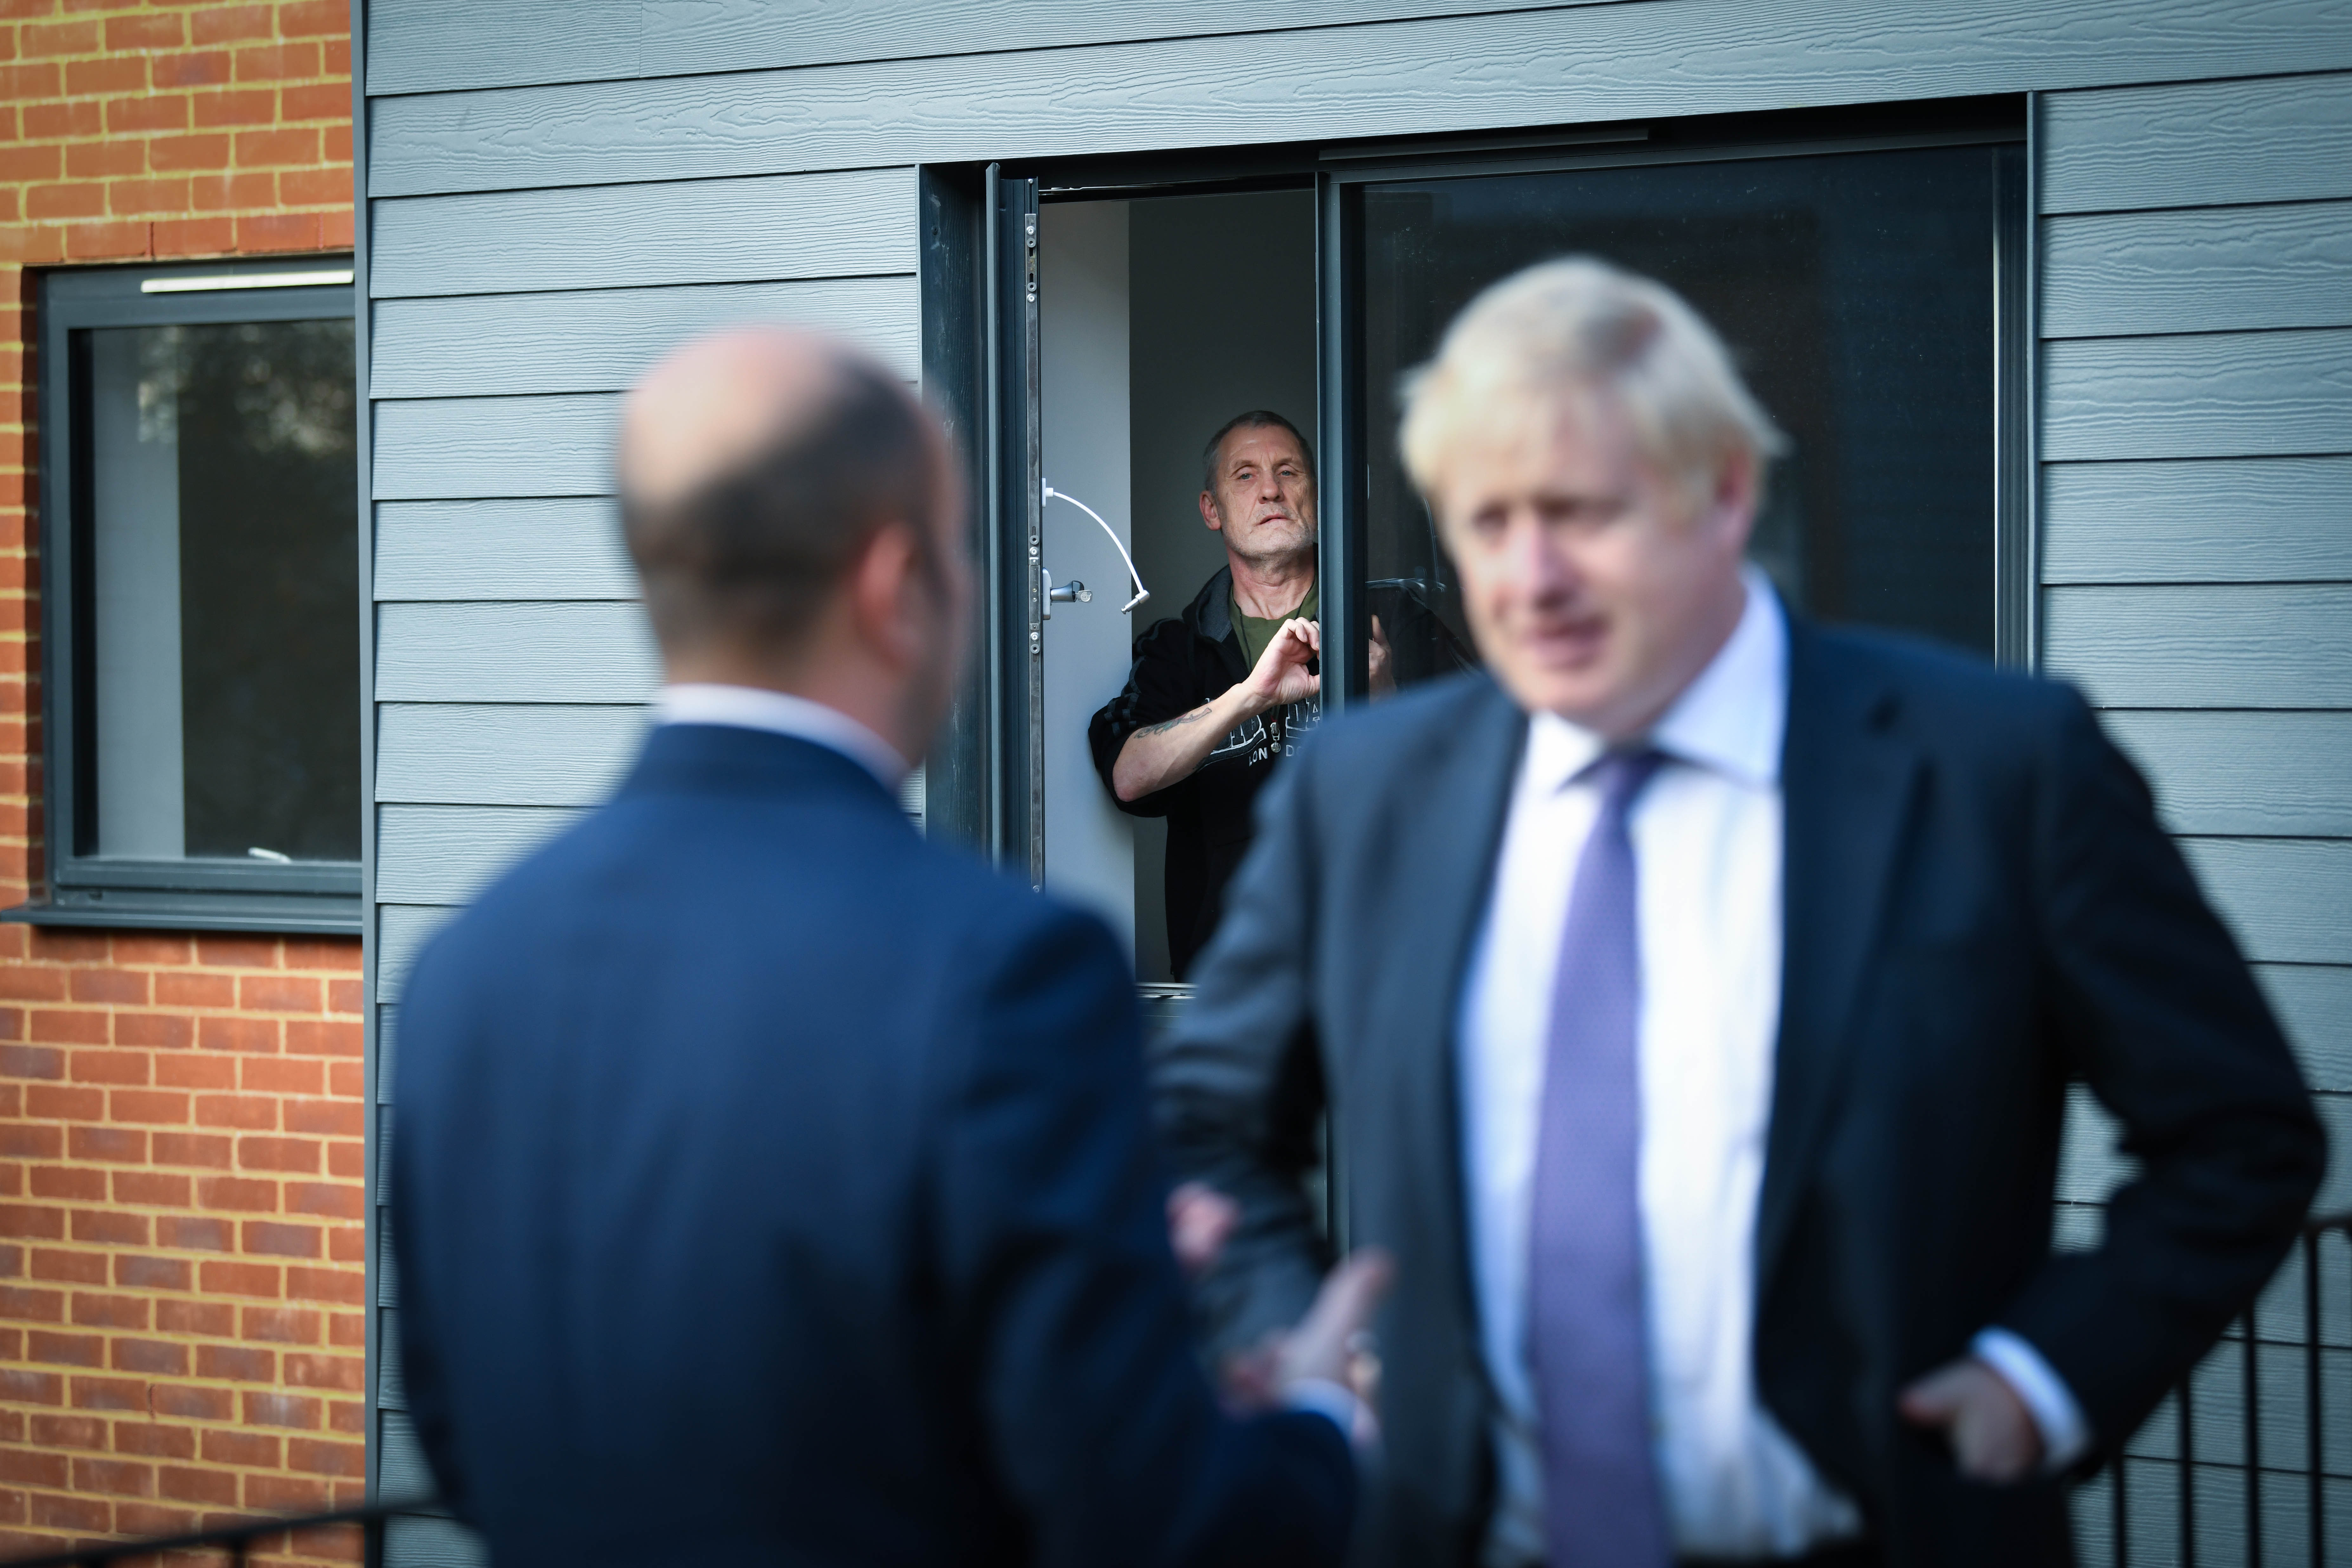 Paul O'Rourke, who served with the Royal Irish Rangers, looks on after meeting Prime Minister Boris Johnson during a visit to a veterans centre in Salisbury, whilst on the General Election campaign trail.